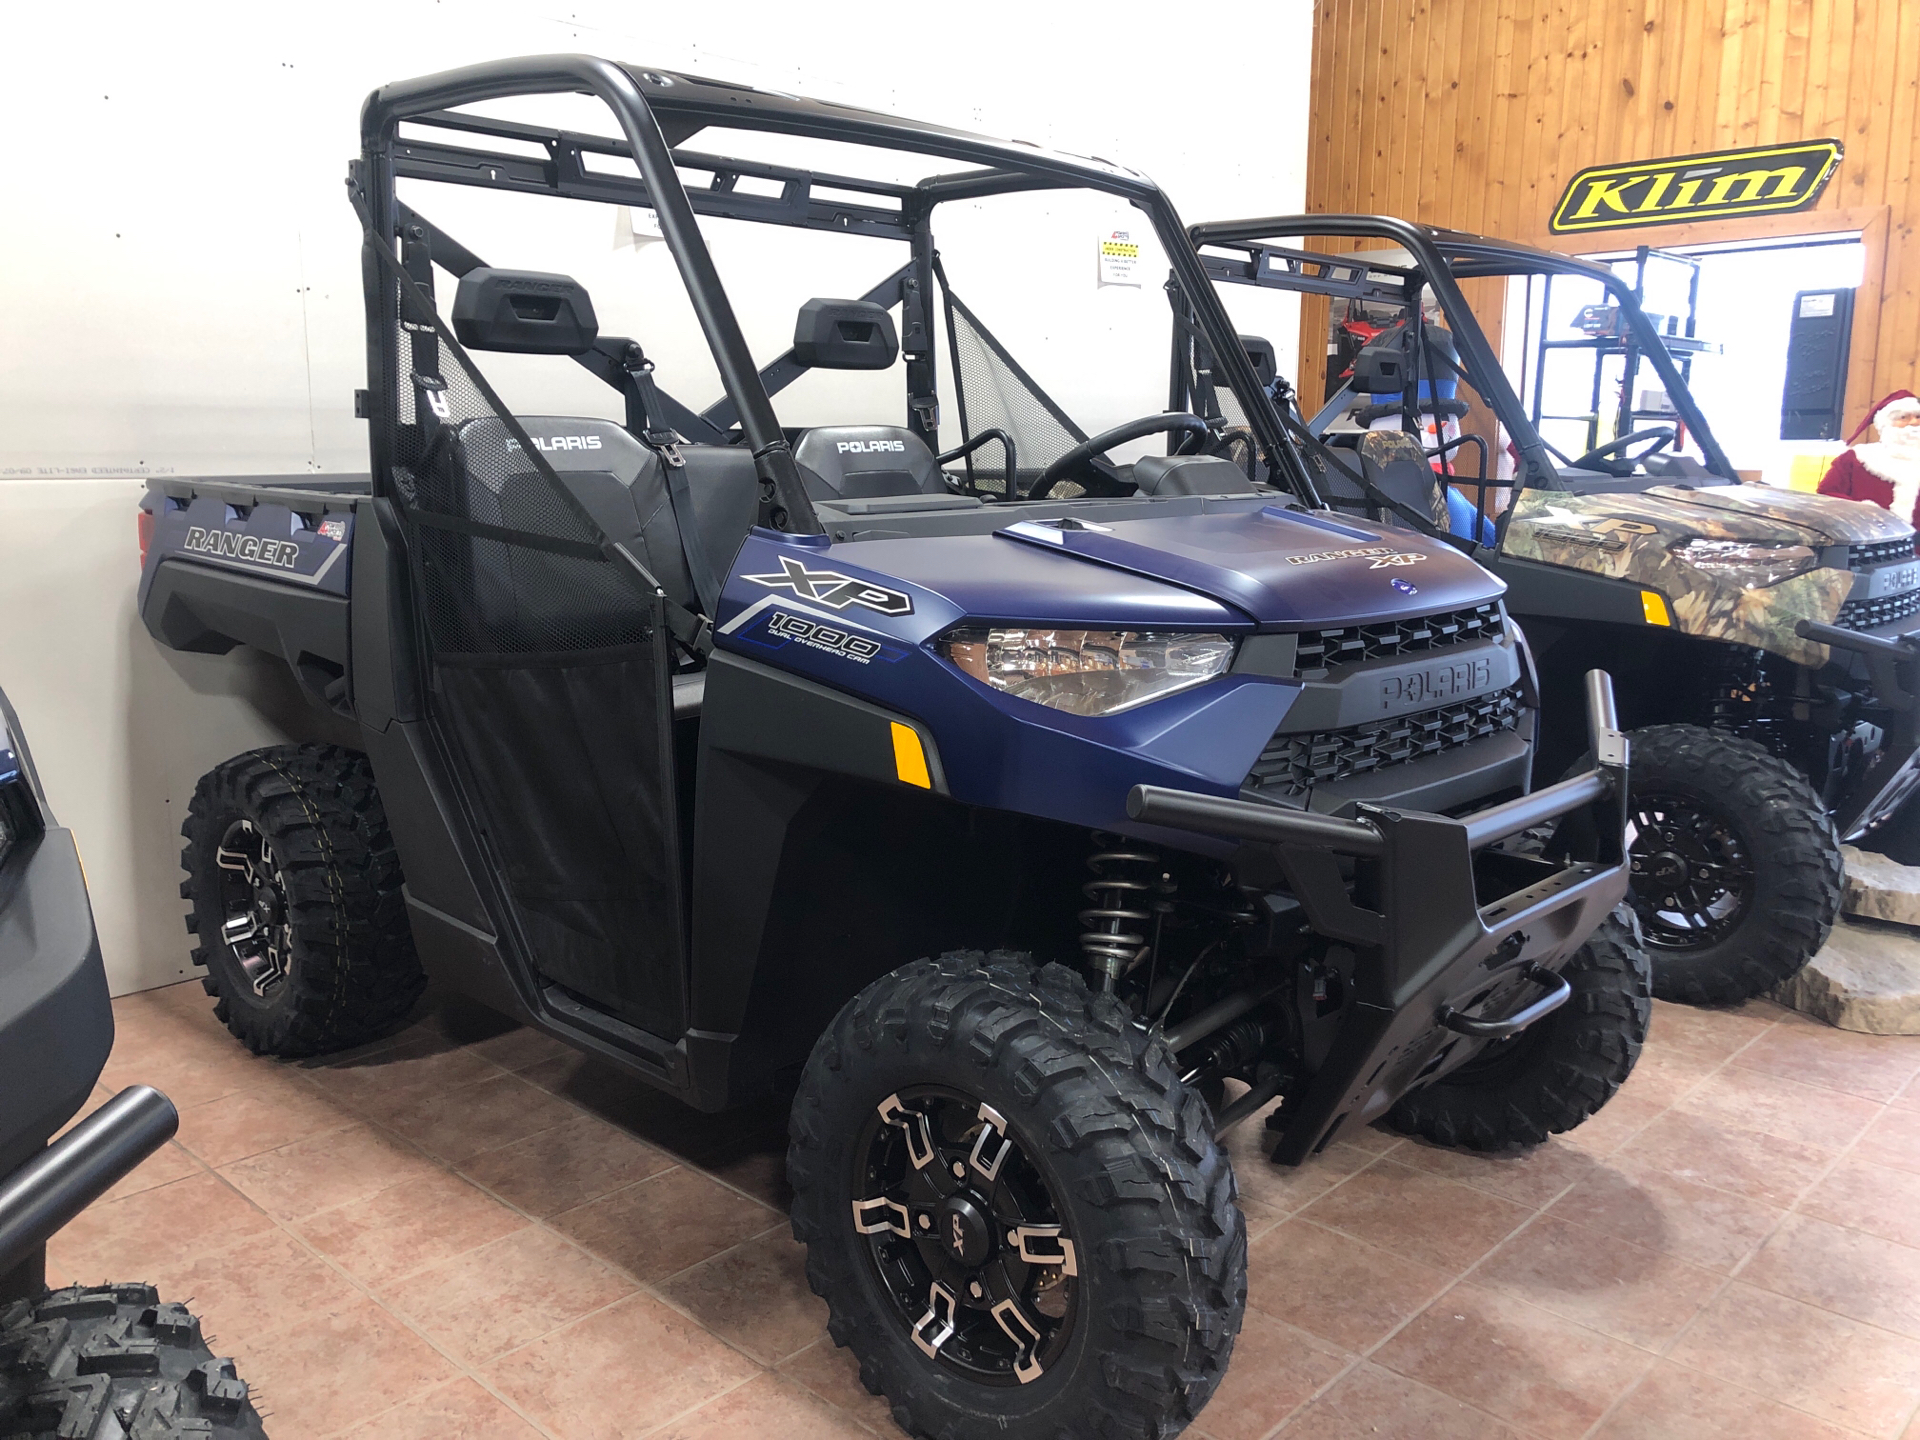 2021 Polaris Ranger XP 1000 Premium in Elkhorn, Wisconsin - Photo 1